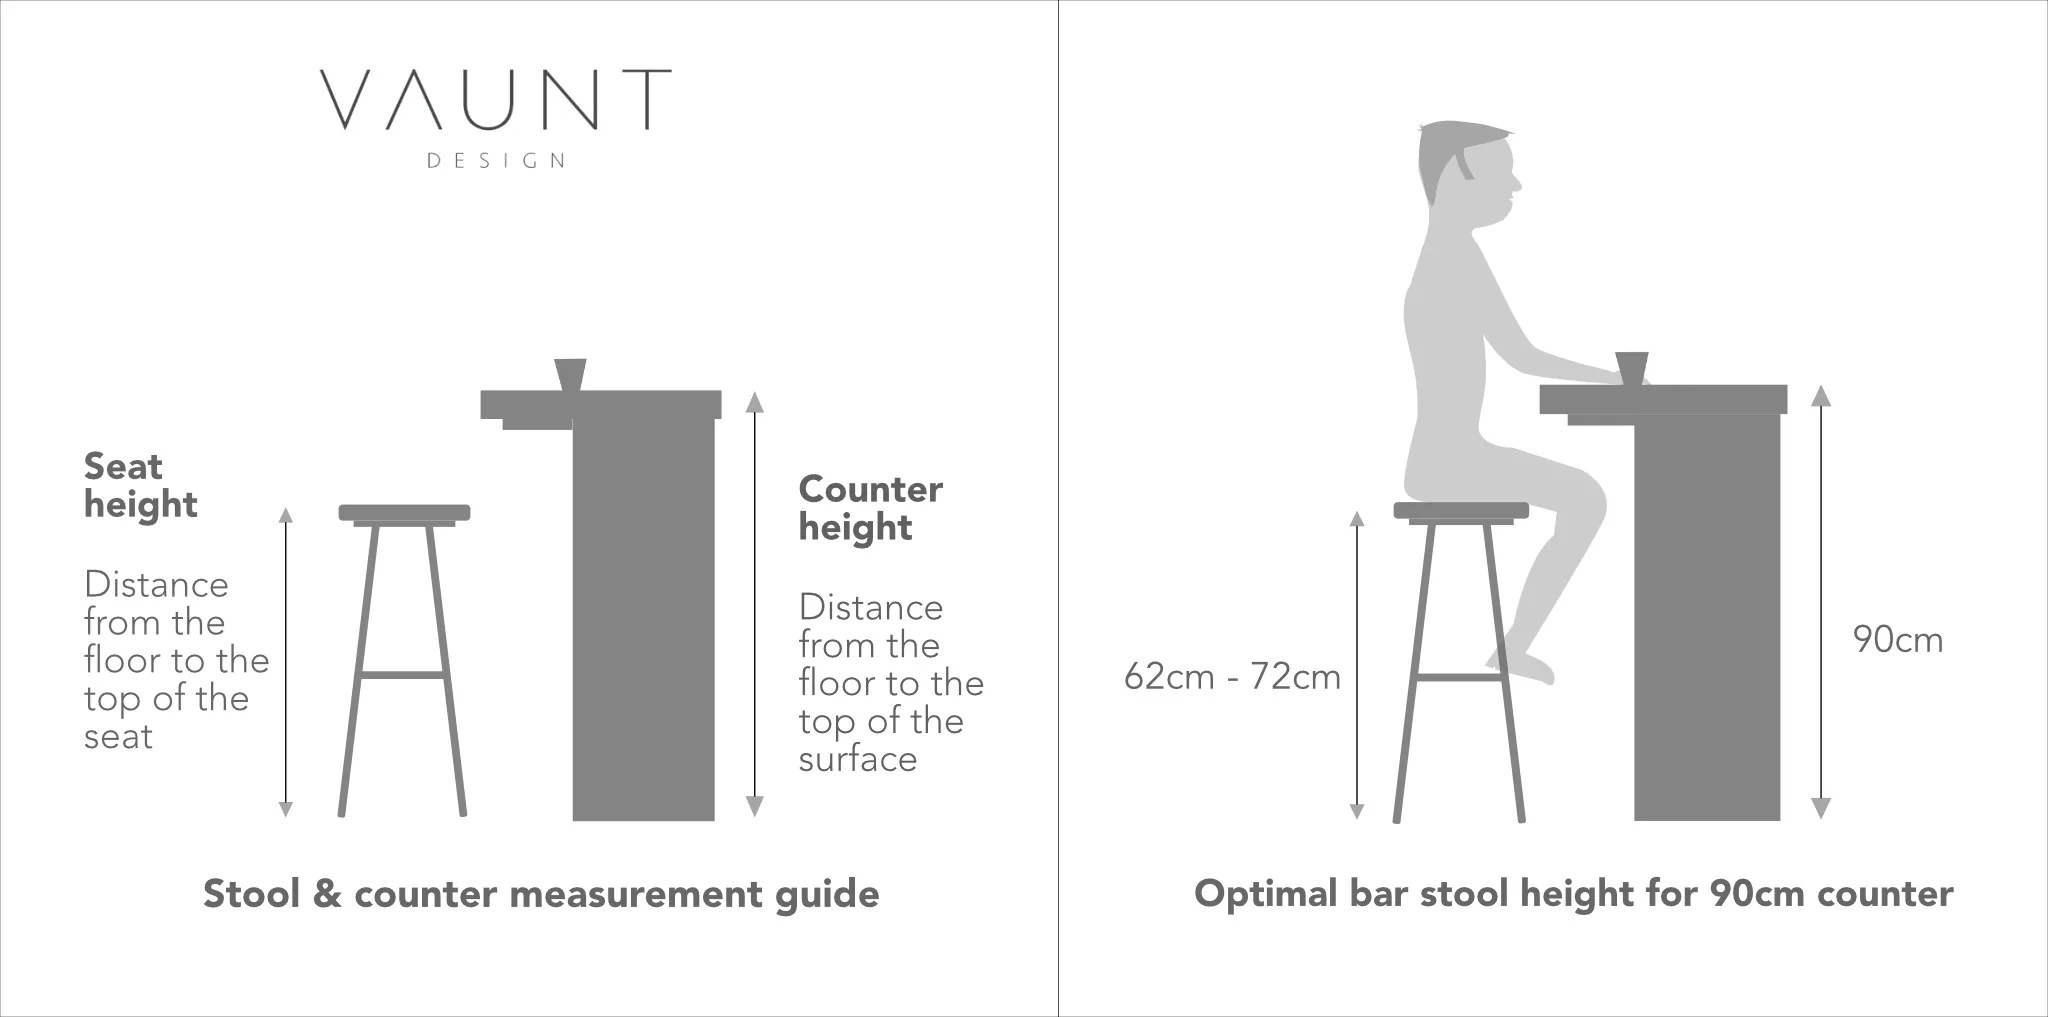 The Correct Bar Stool Height For 90cm Counter Vaunt Design